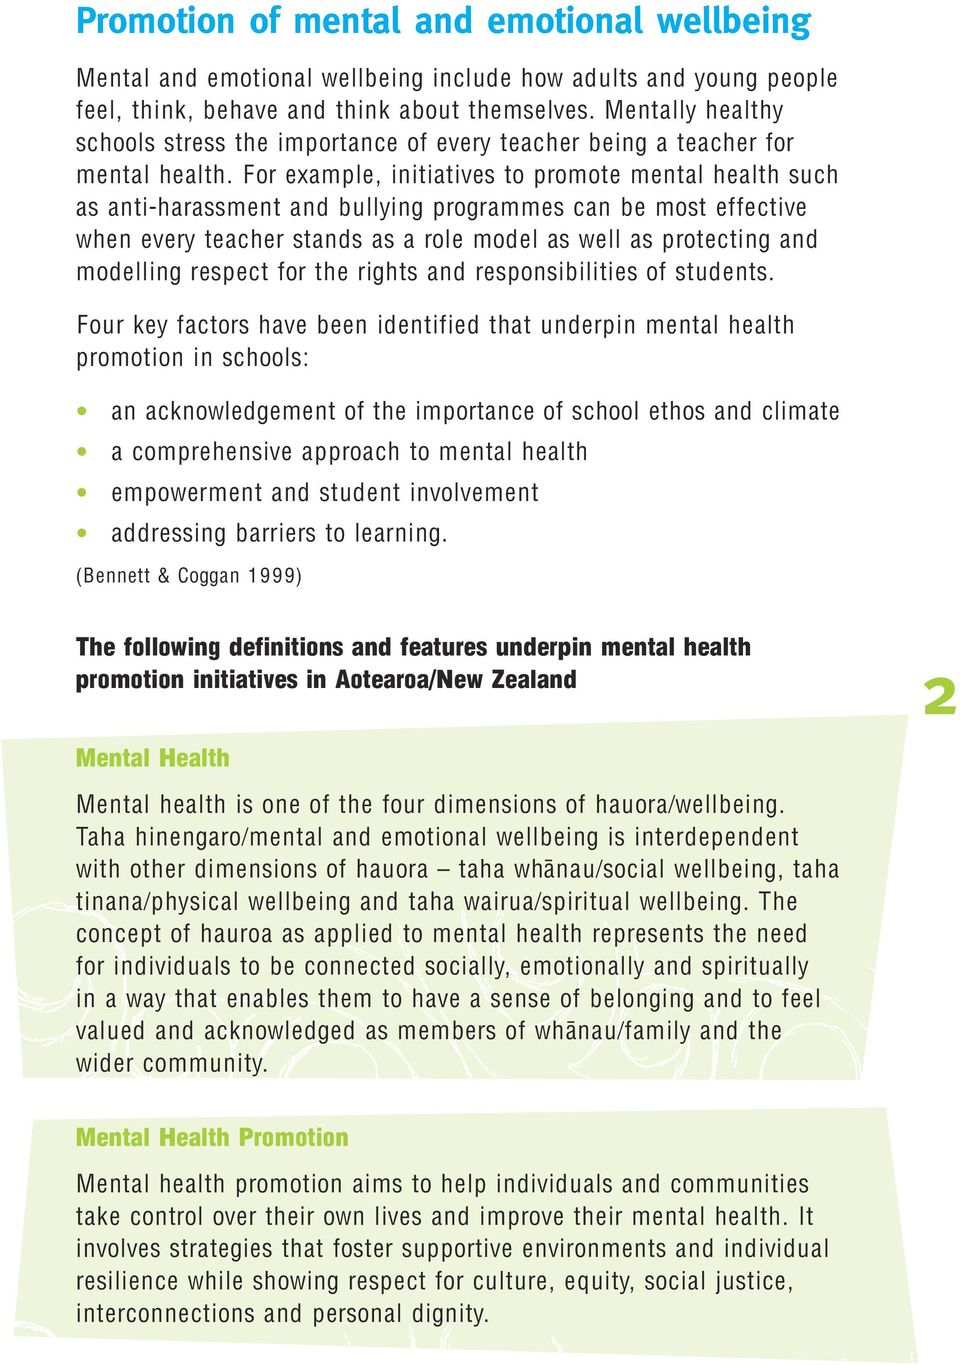 For example, initiatives to promote mental health such as anti-harassment and bullying programmes can be most effective when every teacher stands as a role model as well as protecting and modelling